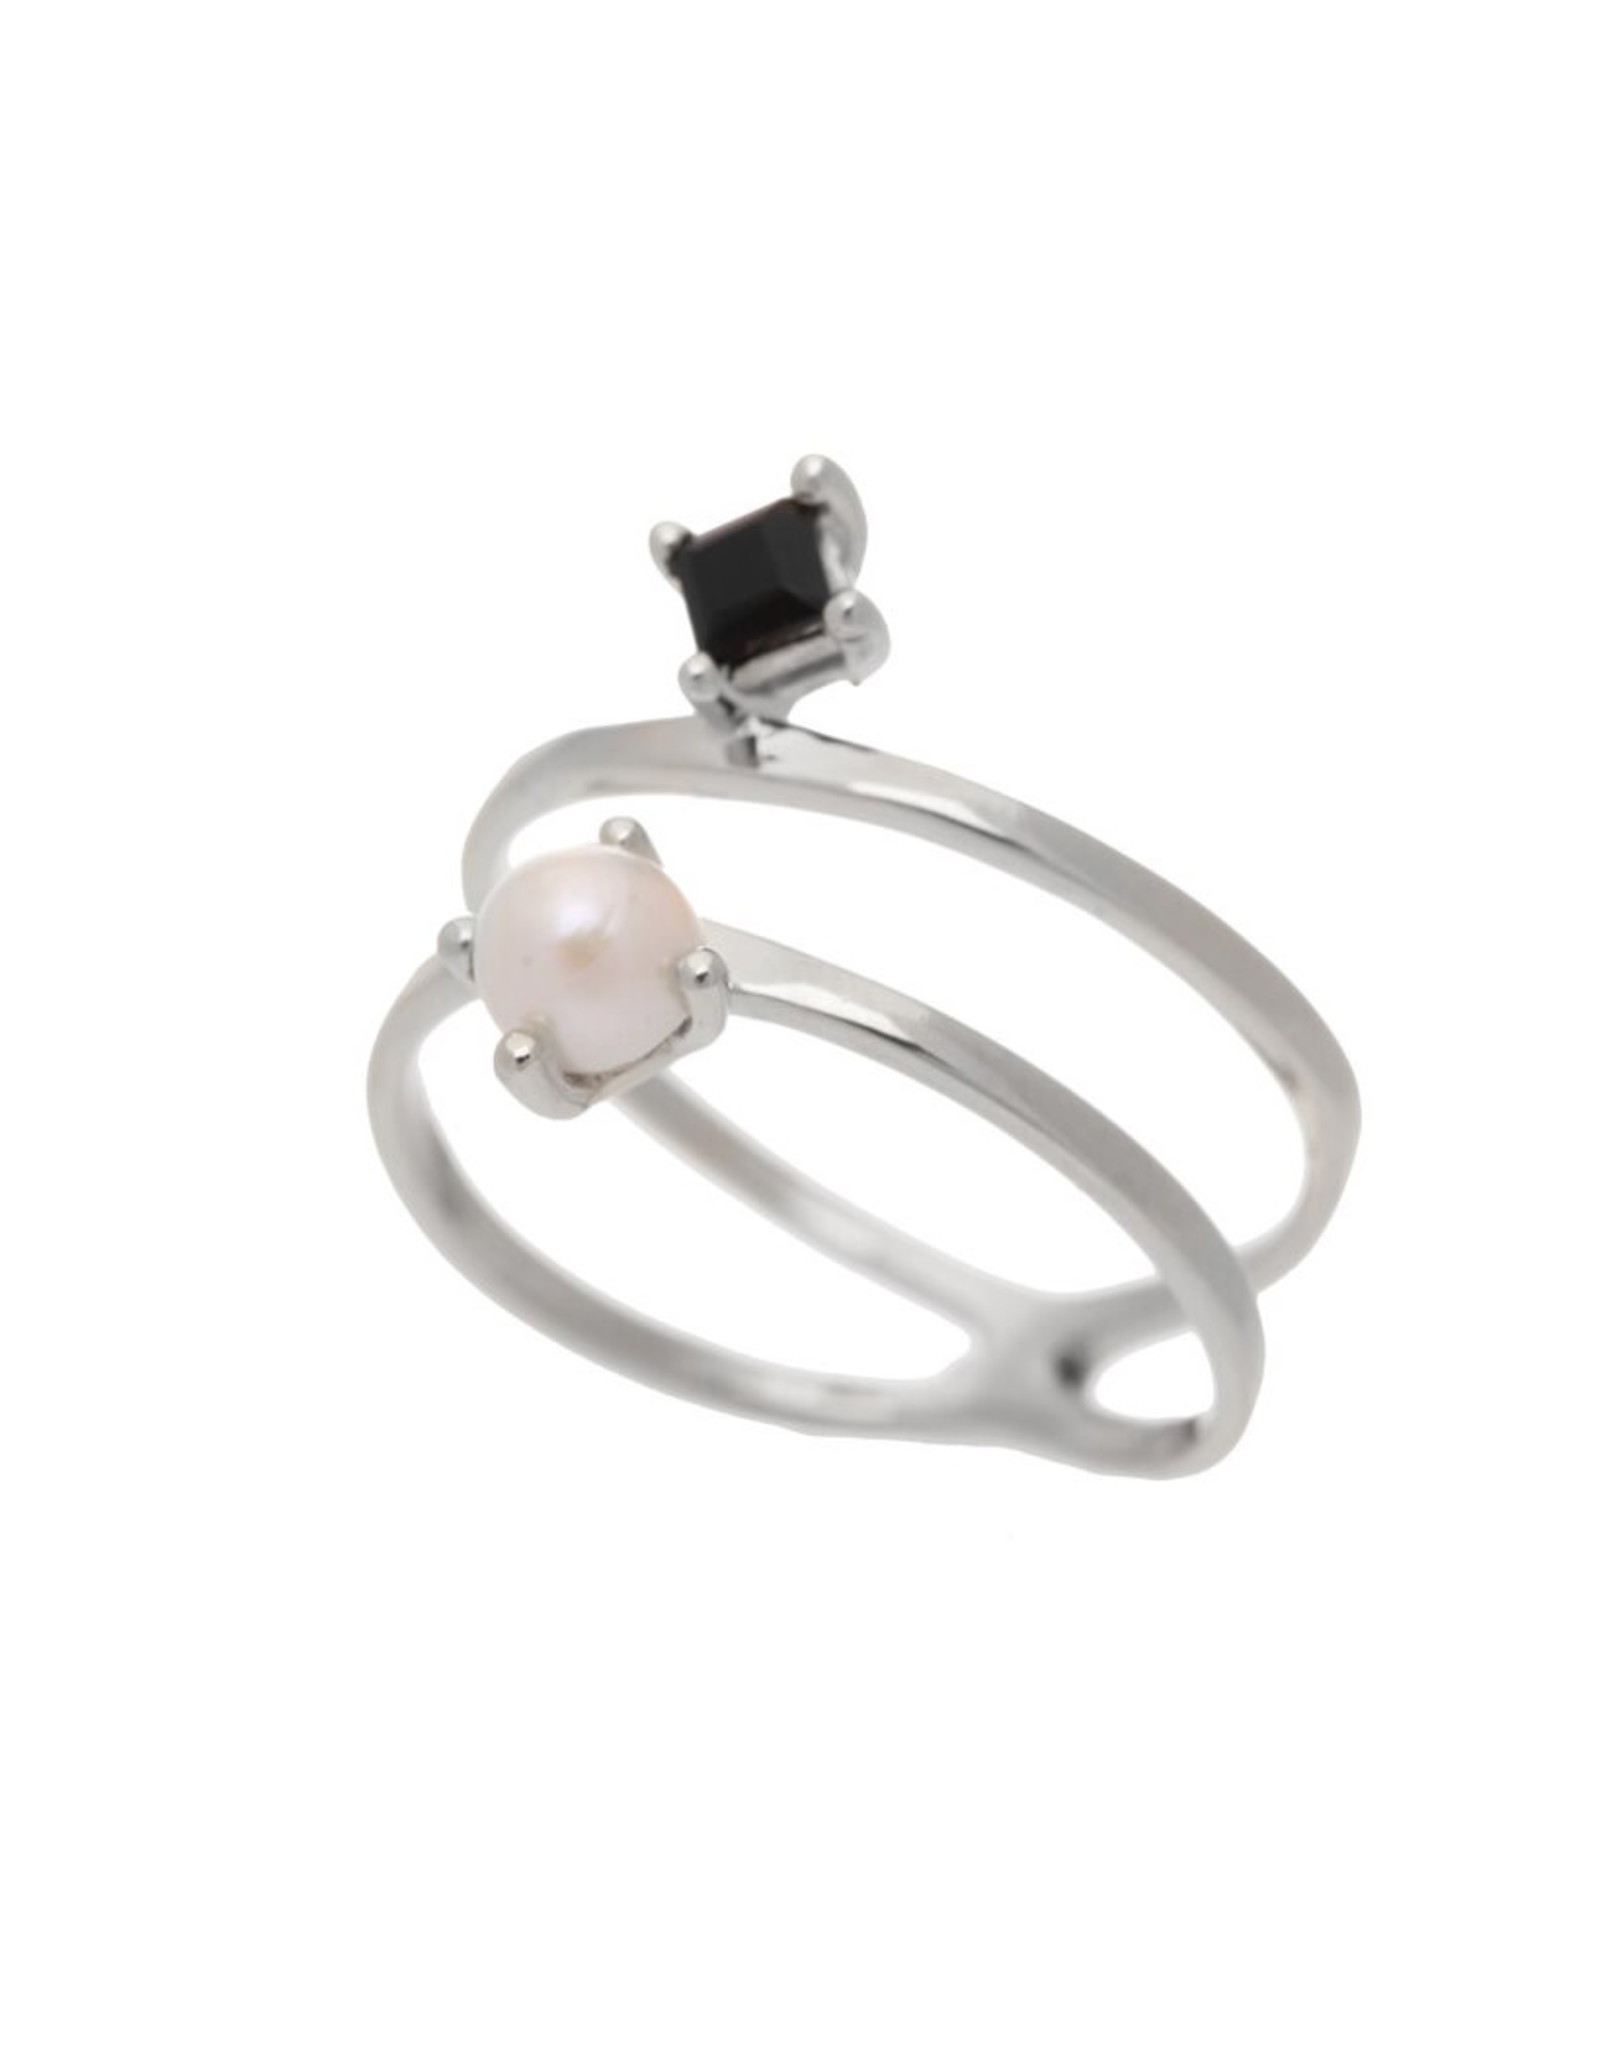 Sarah Mulder Jewelry Silver Cassie Ring - Onyx + Pearl - 8